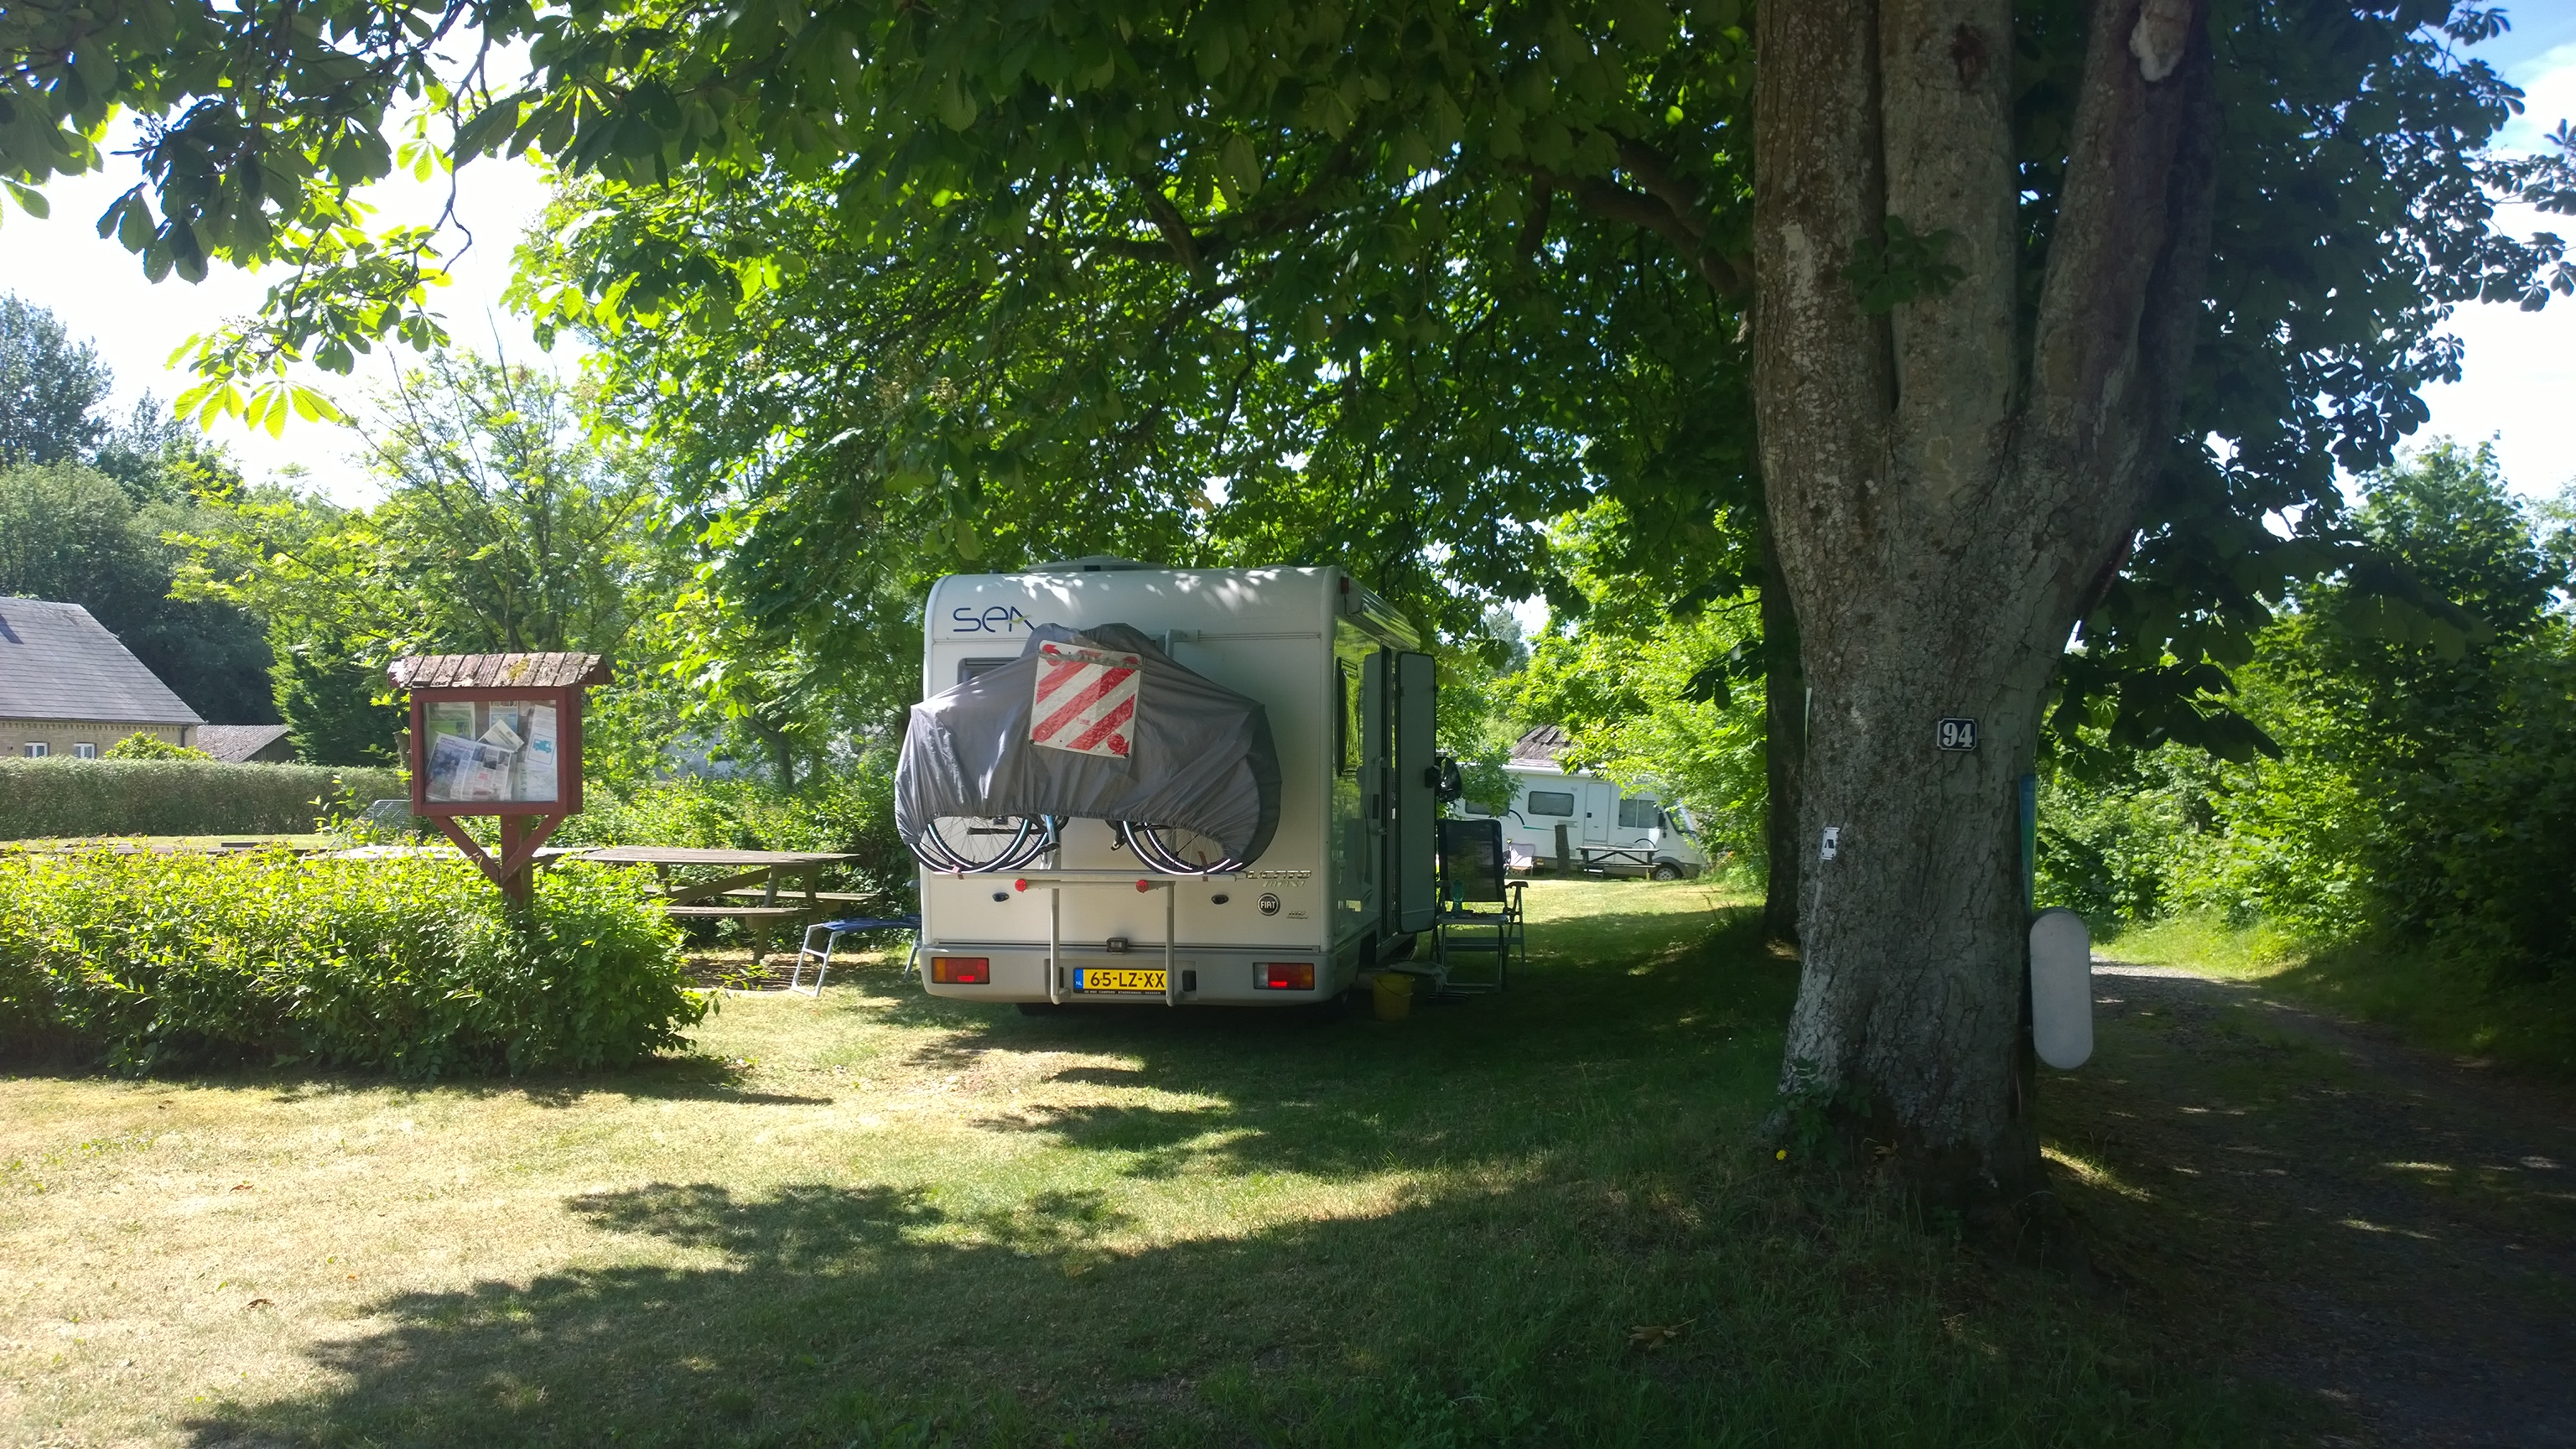 Visitors in mobile home / camper van at our place